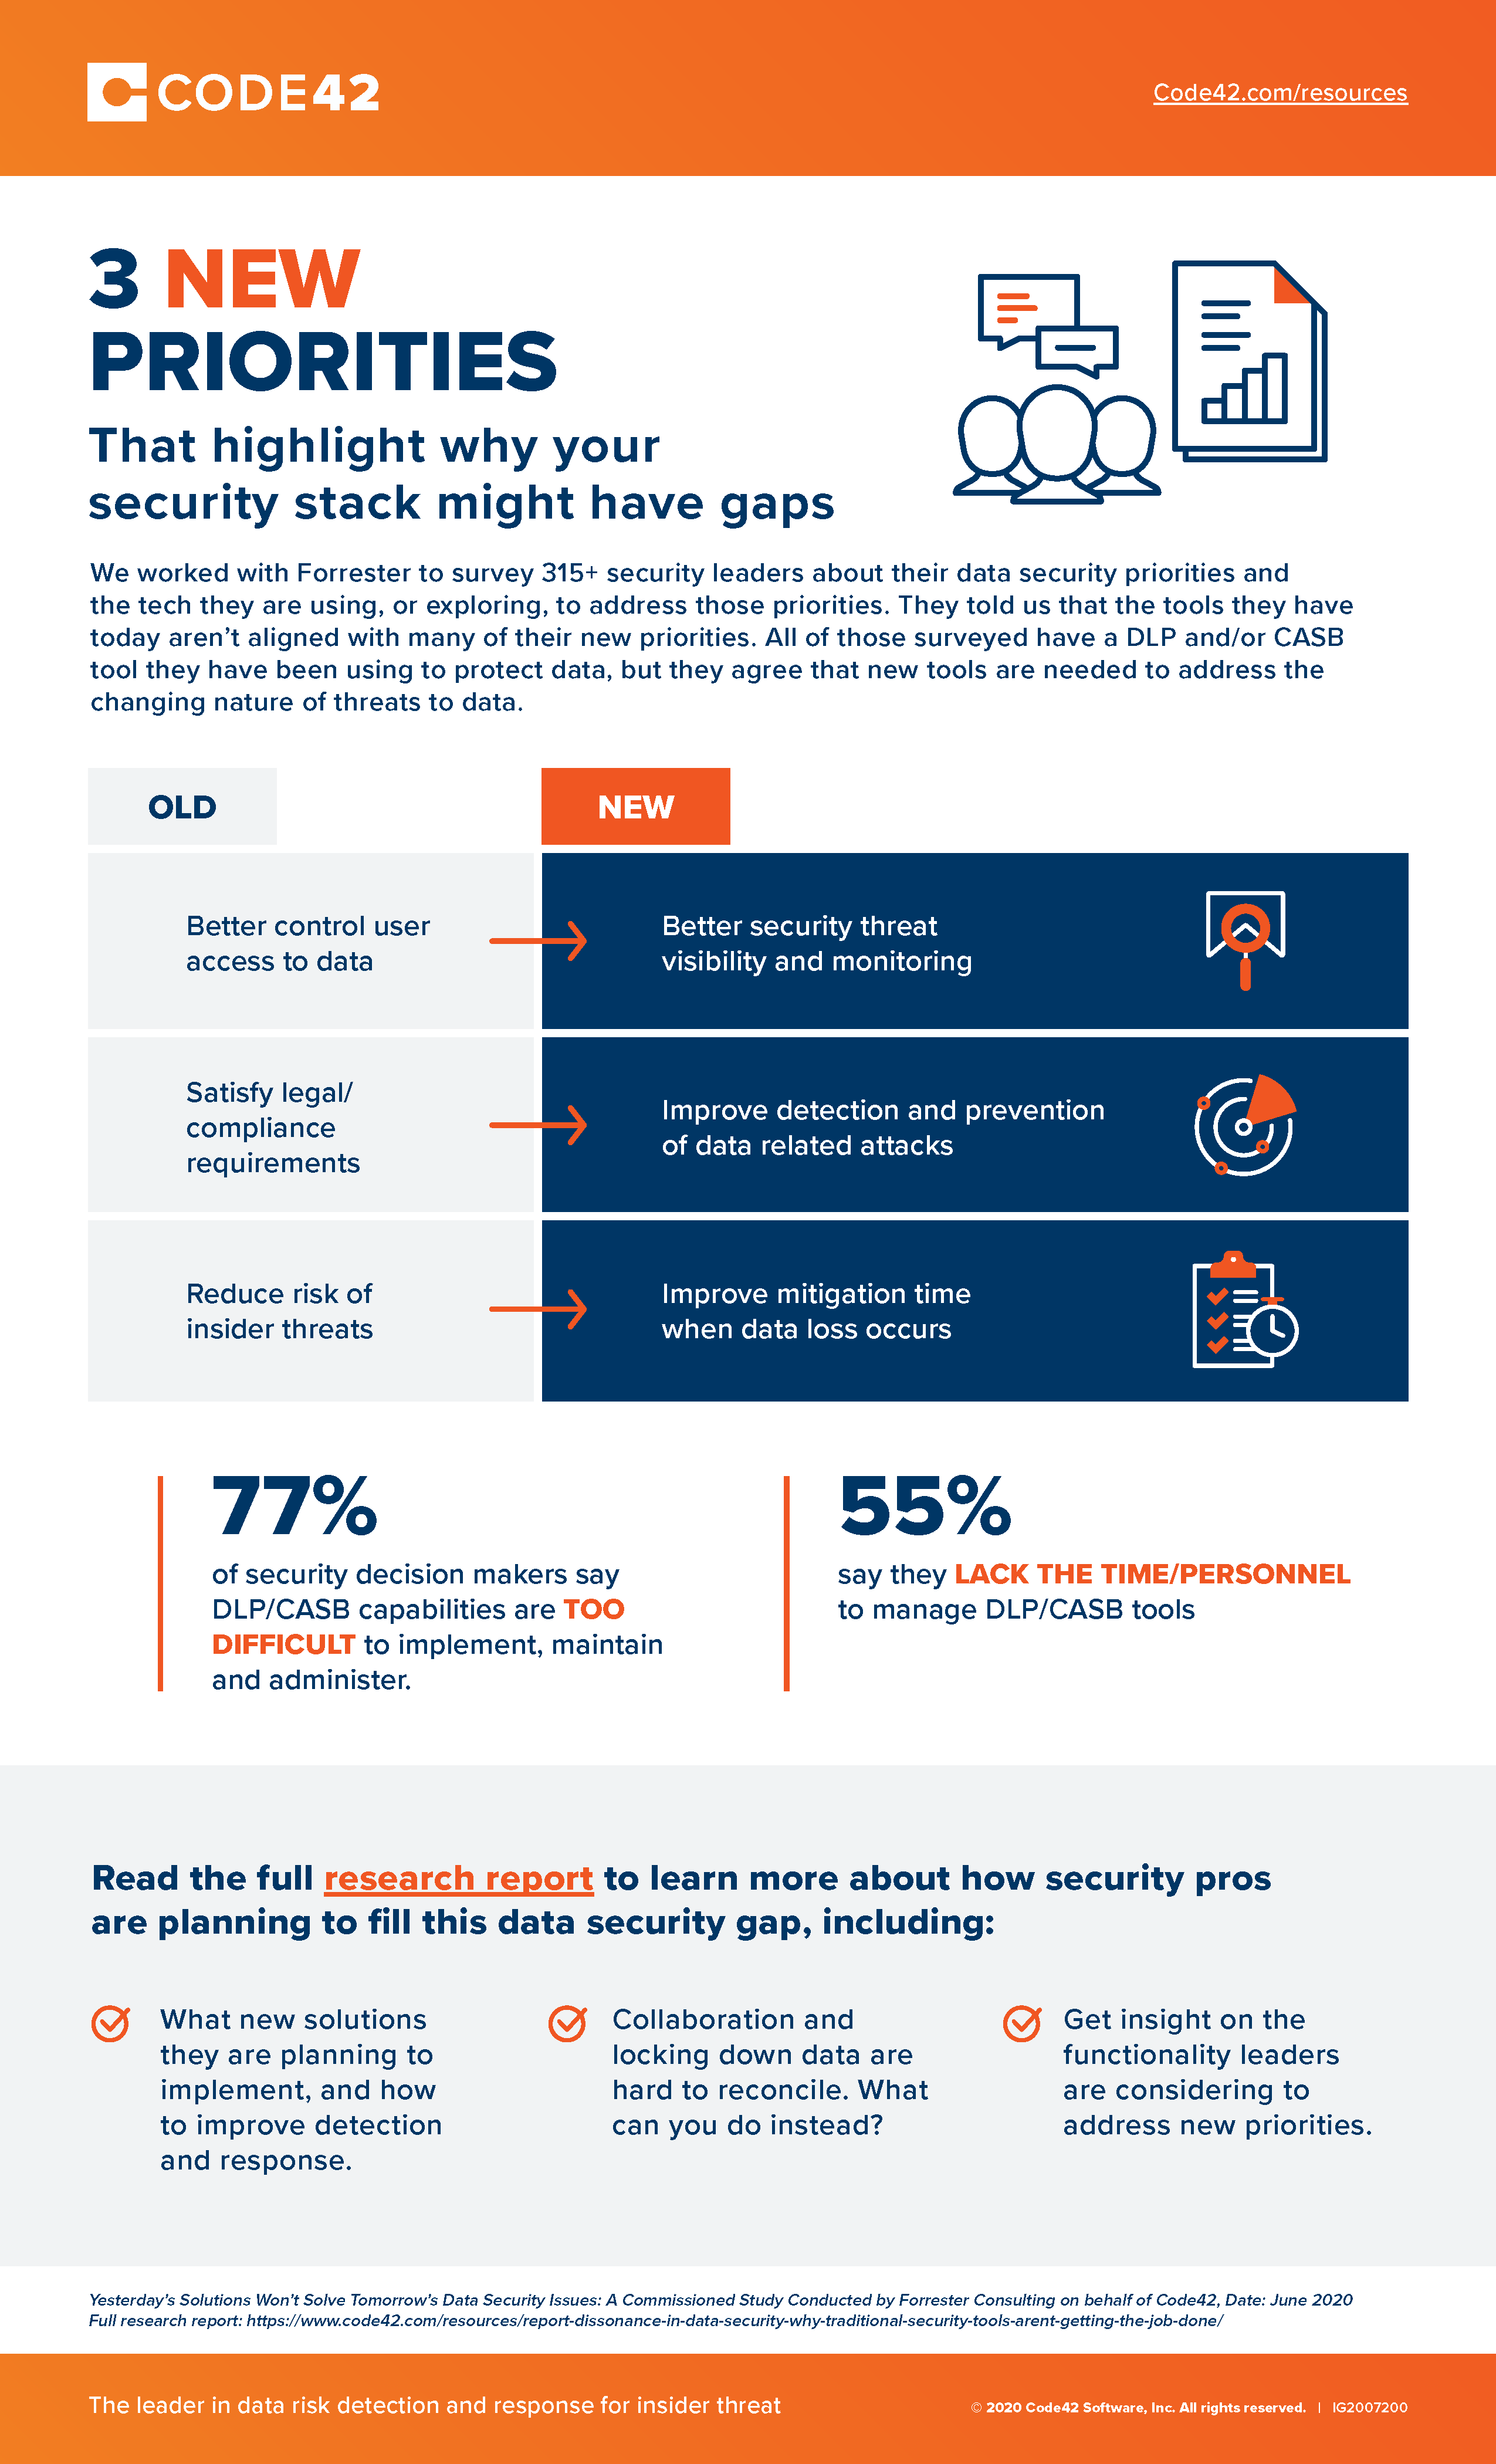 An infographic displaying the Forrester survey results from security leaders on how their new priorities stack up with the security tech they are currently using.